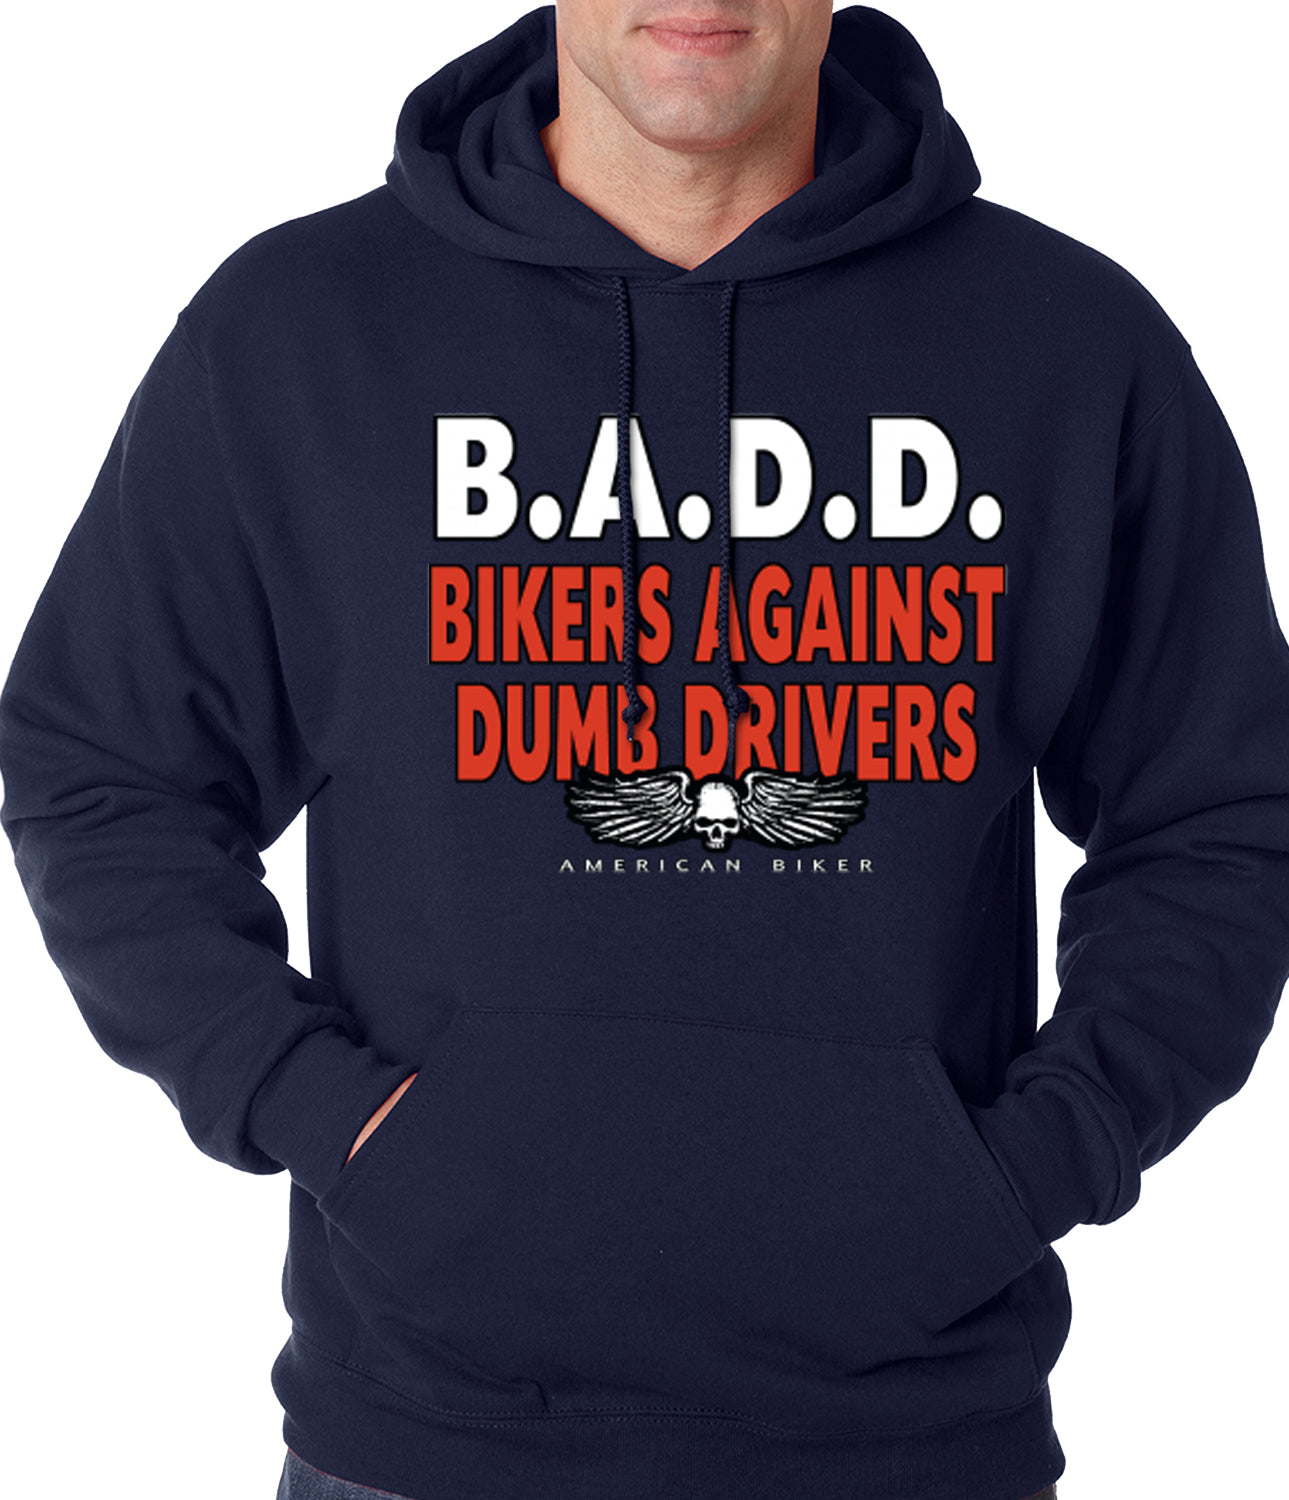 Bikers Against Dumb Drivers Hoodie Navy Blue